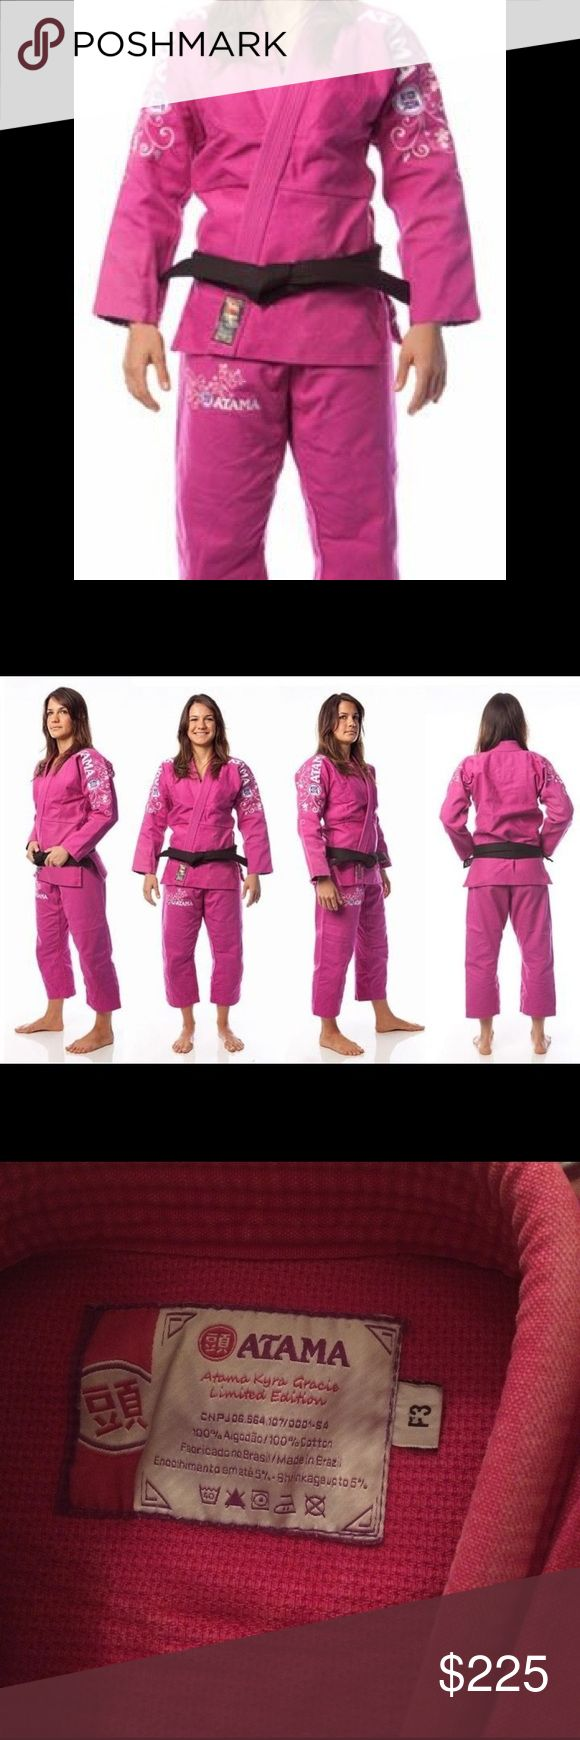 Pink Atama jiu jitsu gi Authentic Kyra Gracie limited edition gi. Most pink Atama gis are plain and solid, this limited edition Kyra Gracie has flowers on shoulders and pants as shown. Sold out everywhere online. Vinegar soaked so color will never fade, will always look brand new! Size women's F3. Other